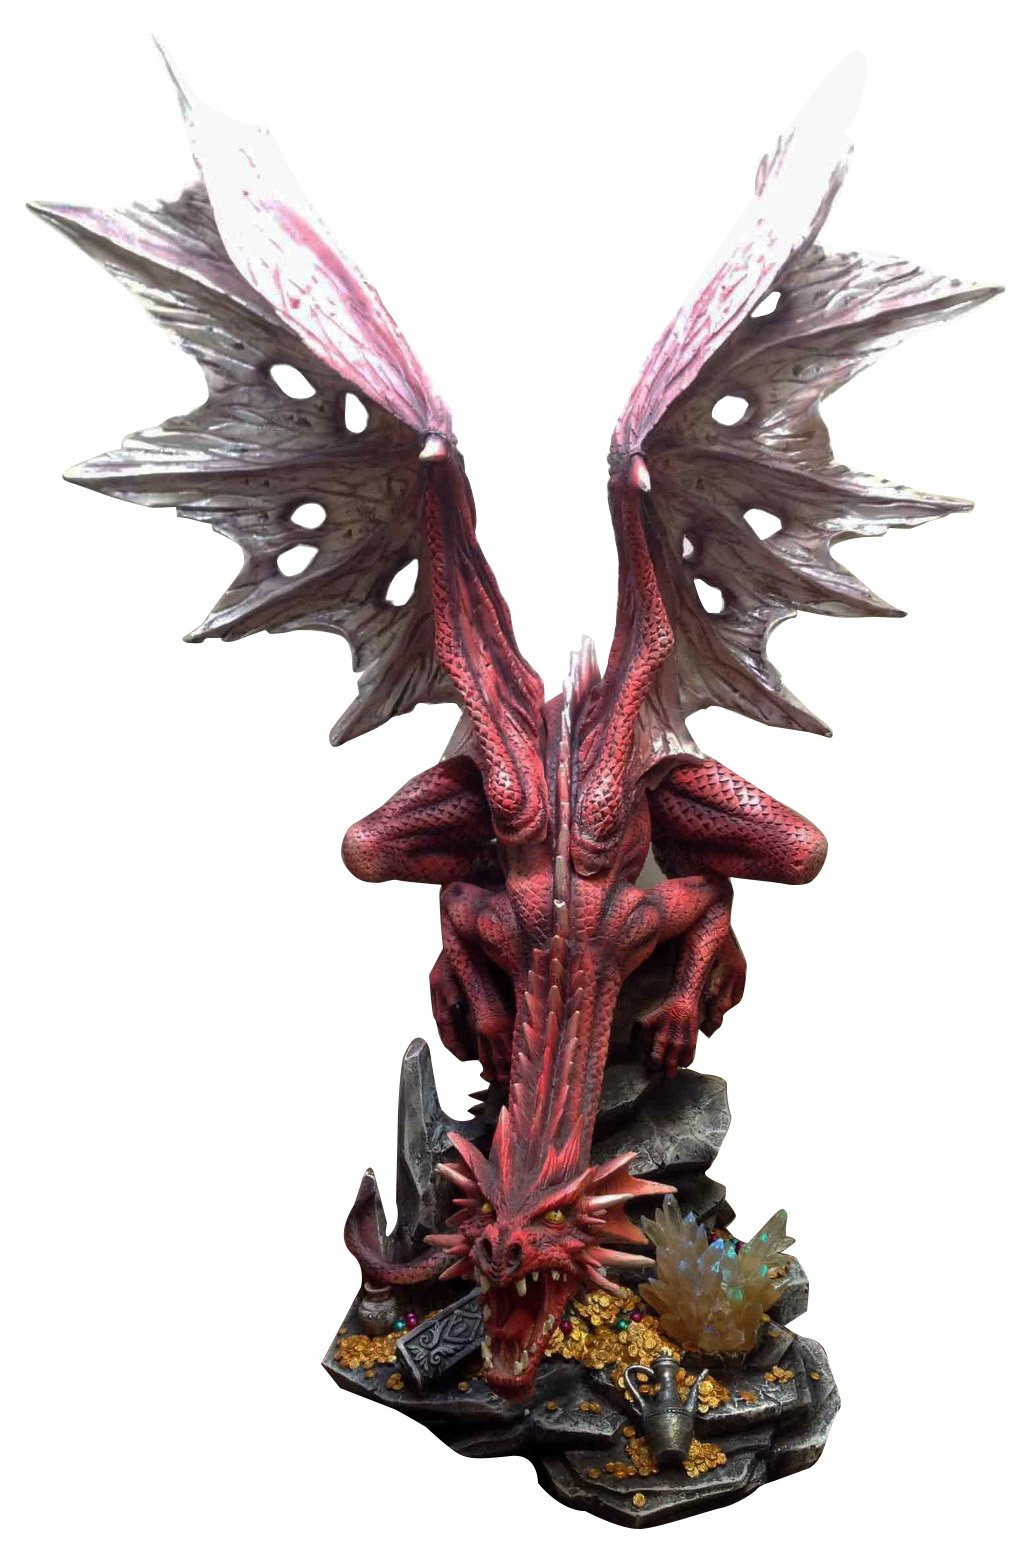 LARGE 23''H RED FIERY DRAGON ON ROCK STATUE LED NIGHT LIGHT FIGURINE VIVID COLORS